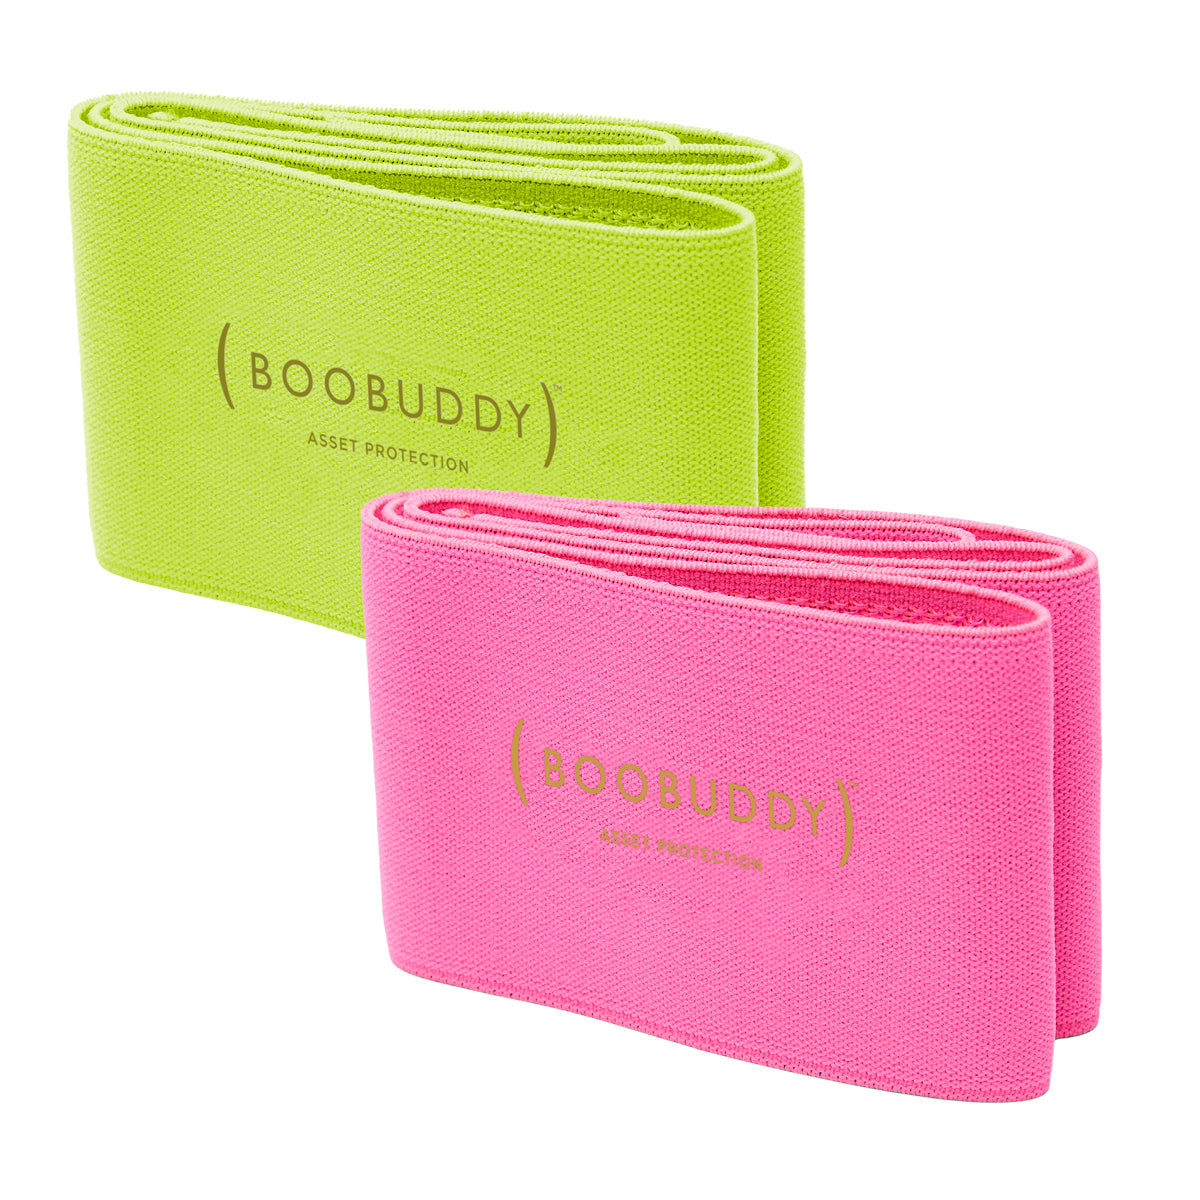 Boobuddy Adjustable Breast Support Band | Green & Pink Bundle | SAVE £13!